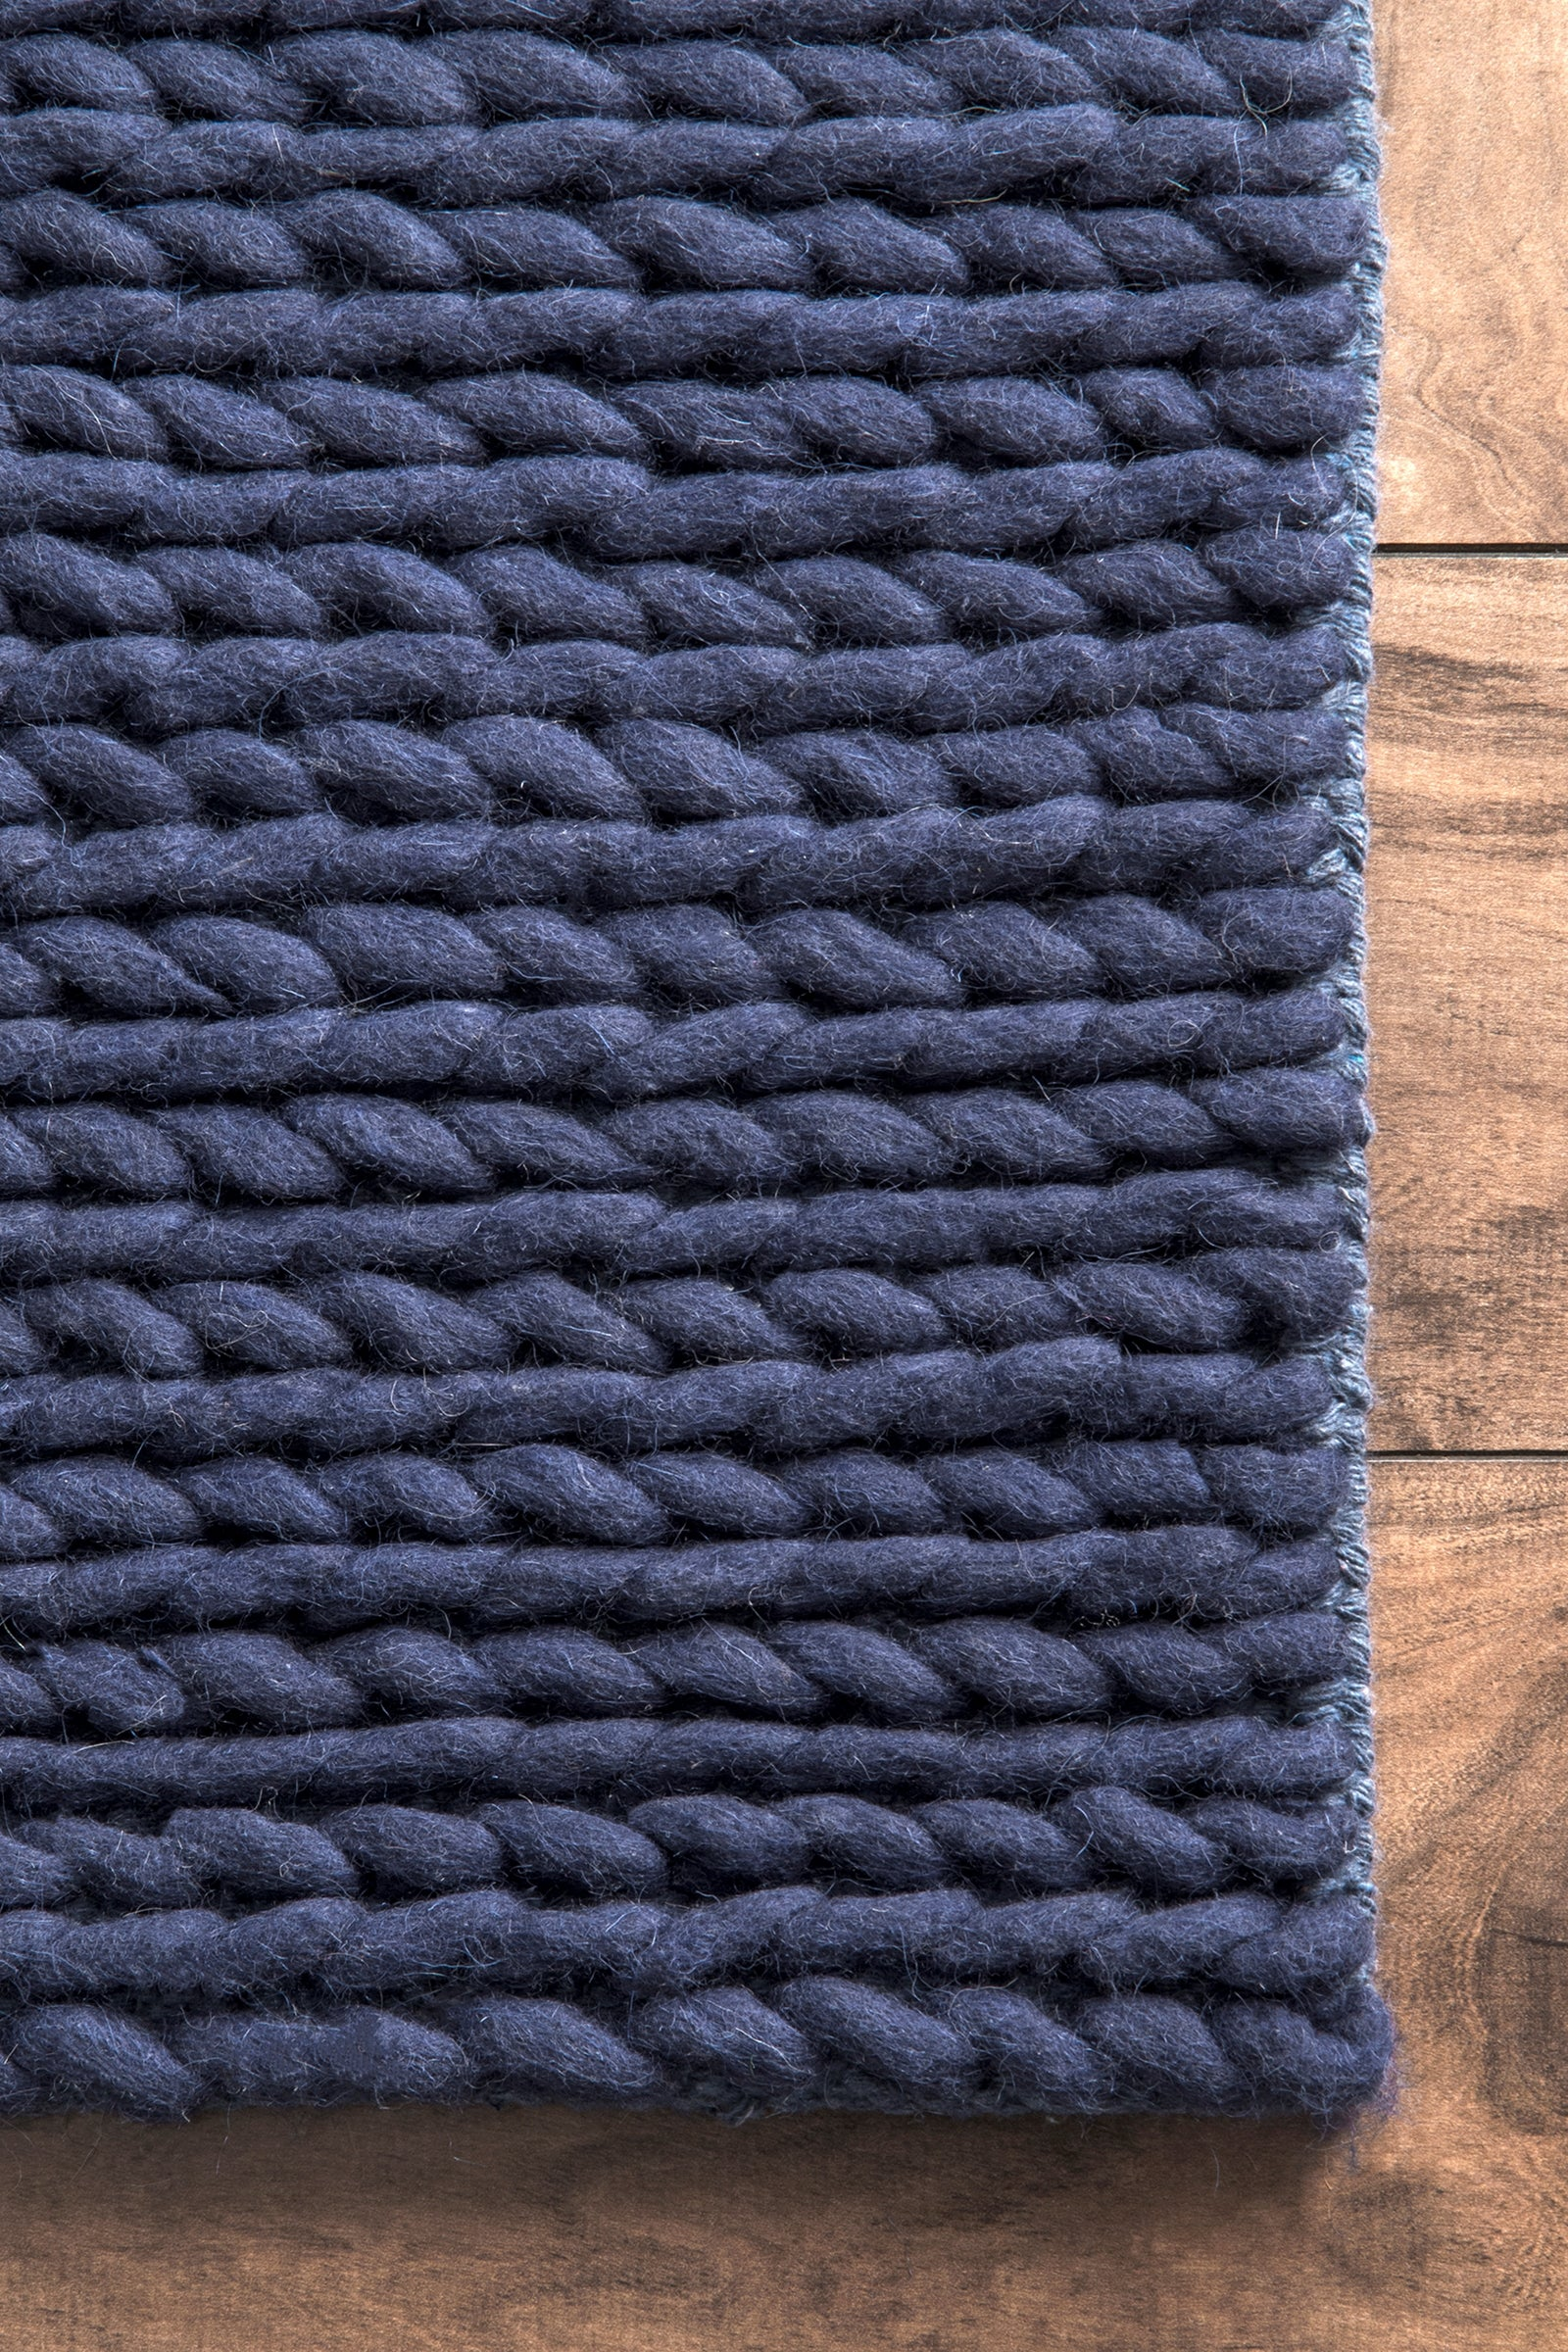 CHUNKY CABLE HANDWOVEN <br>(3 DESIGNS)